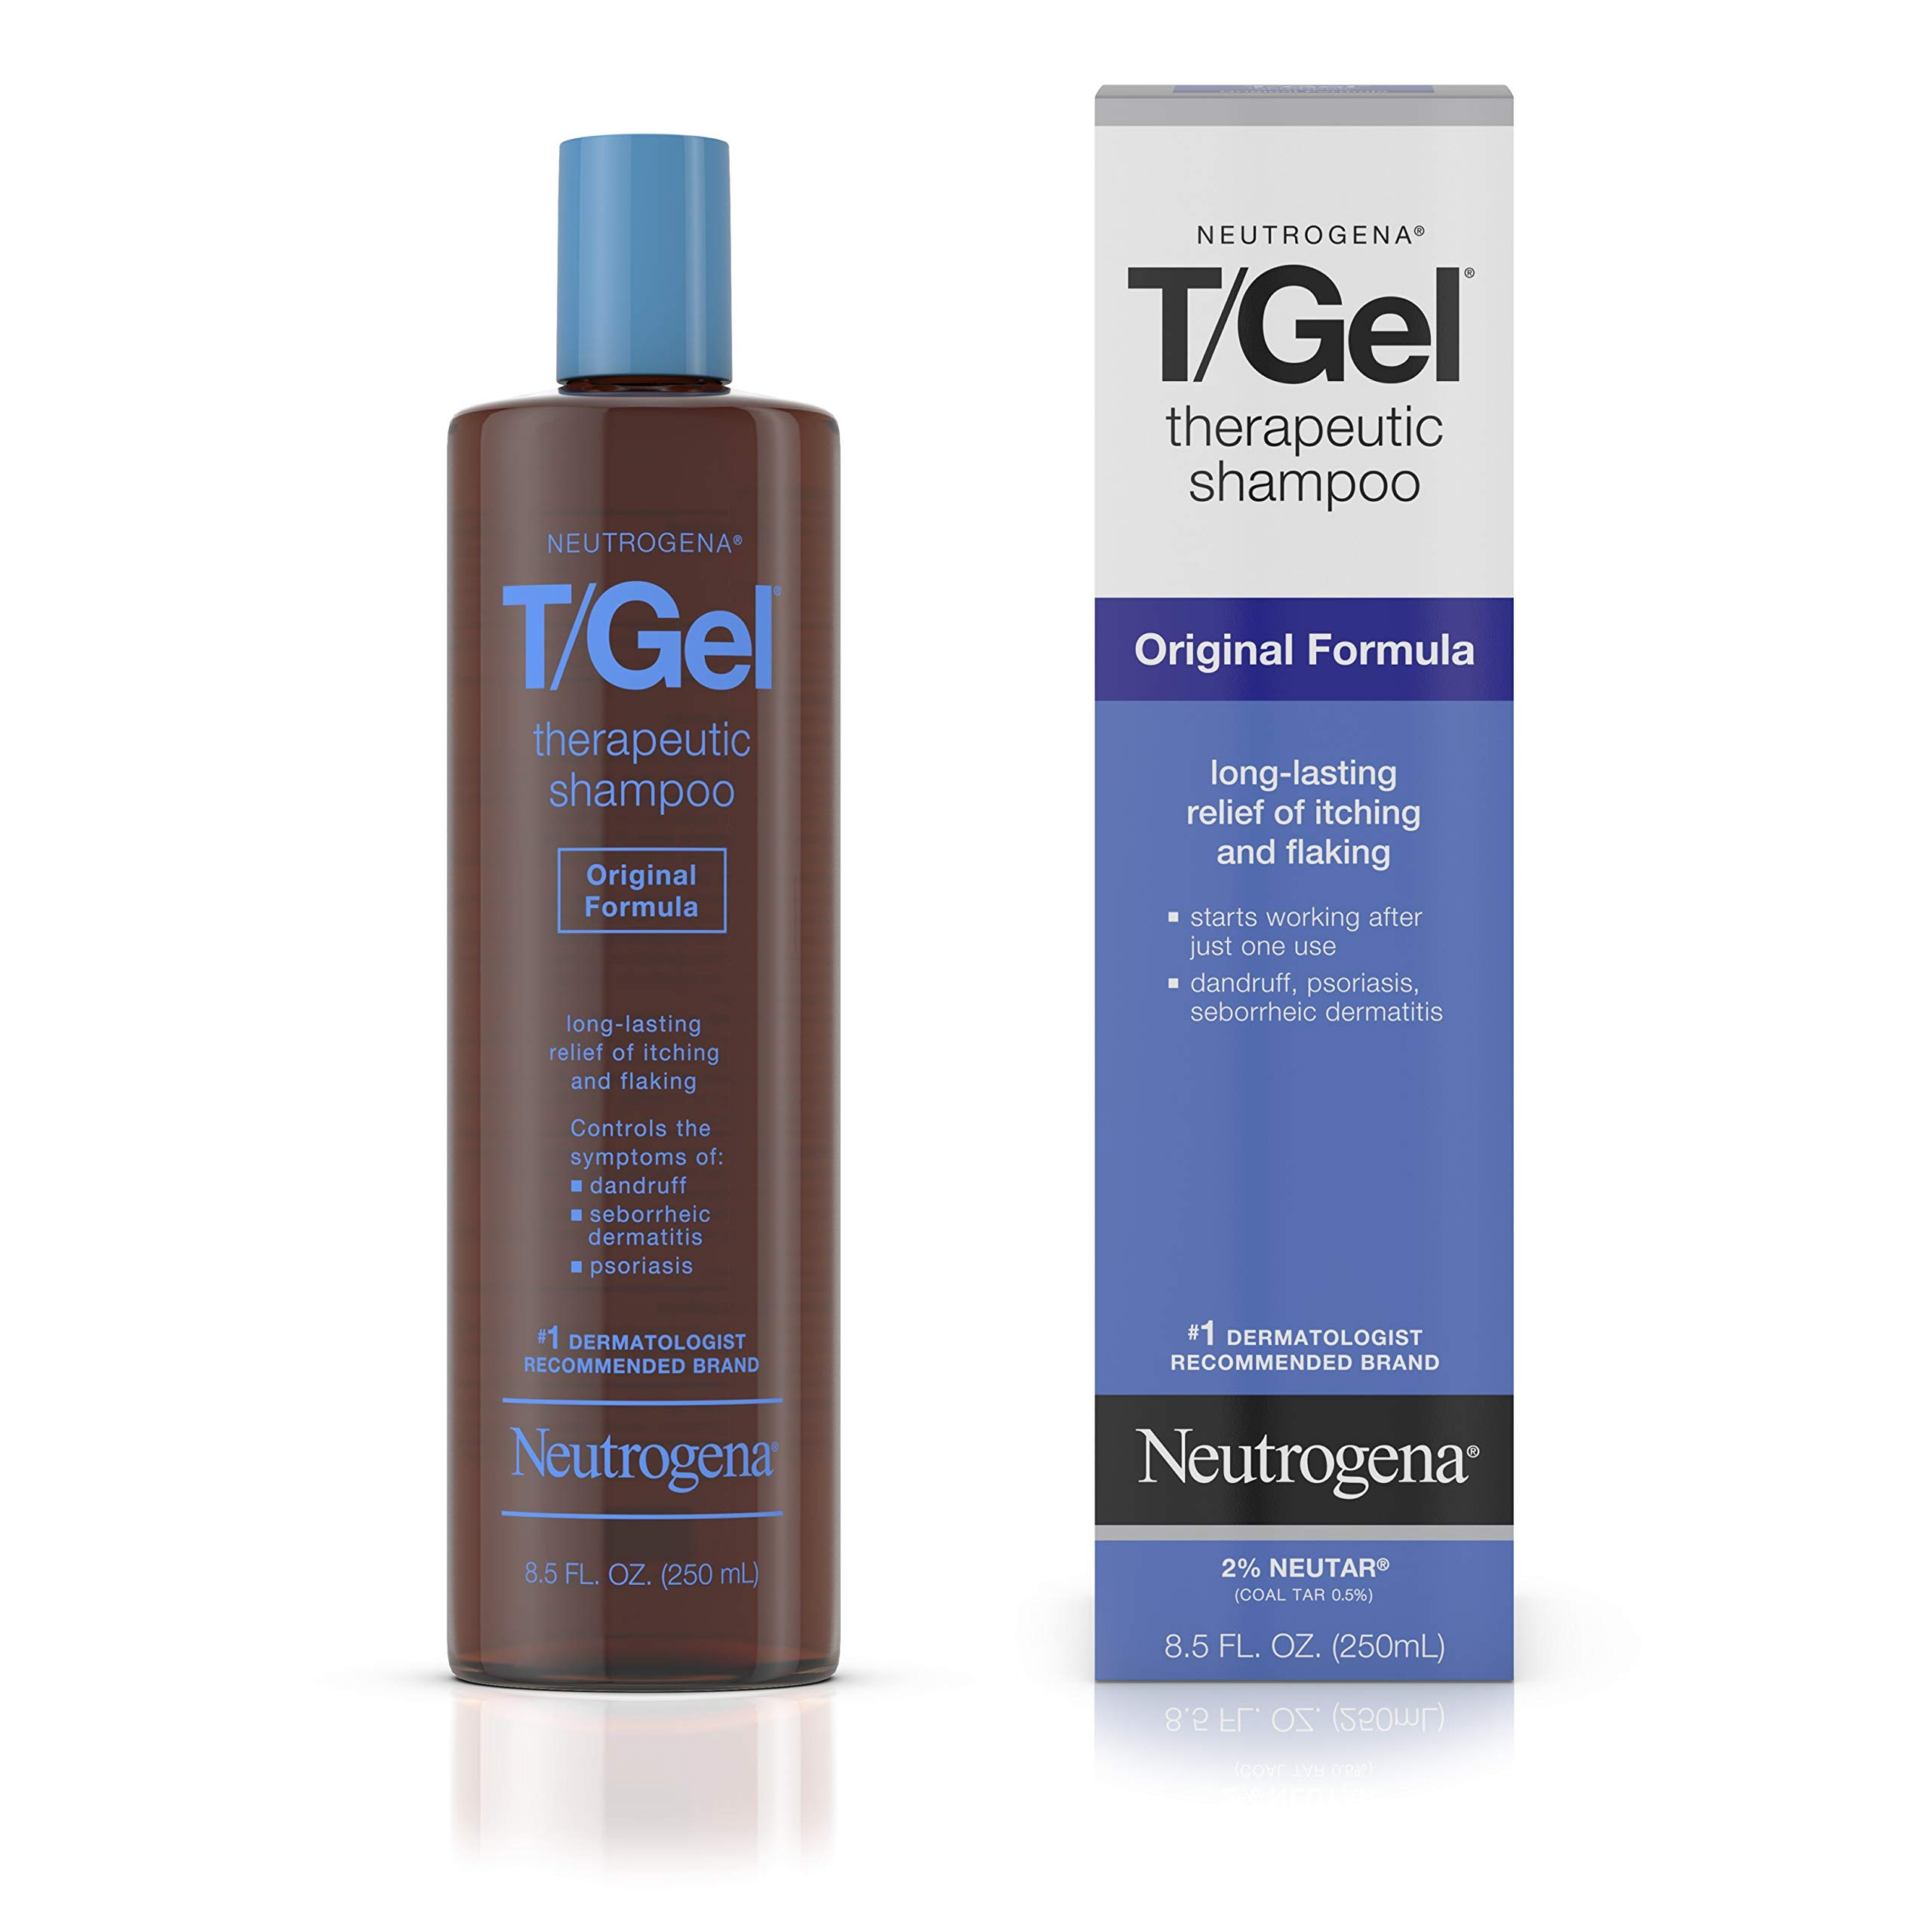 Neutrogena T/Gel Therapeutic Shampoo, Original Formula, 8.5 Ounce